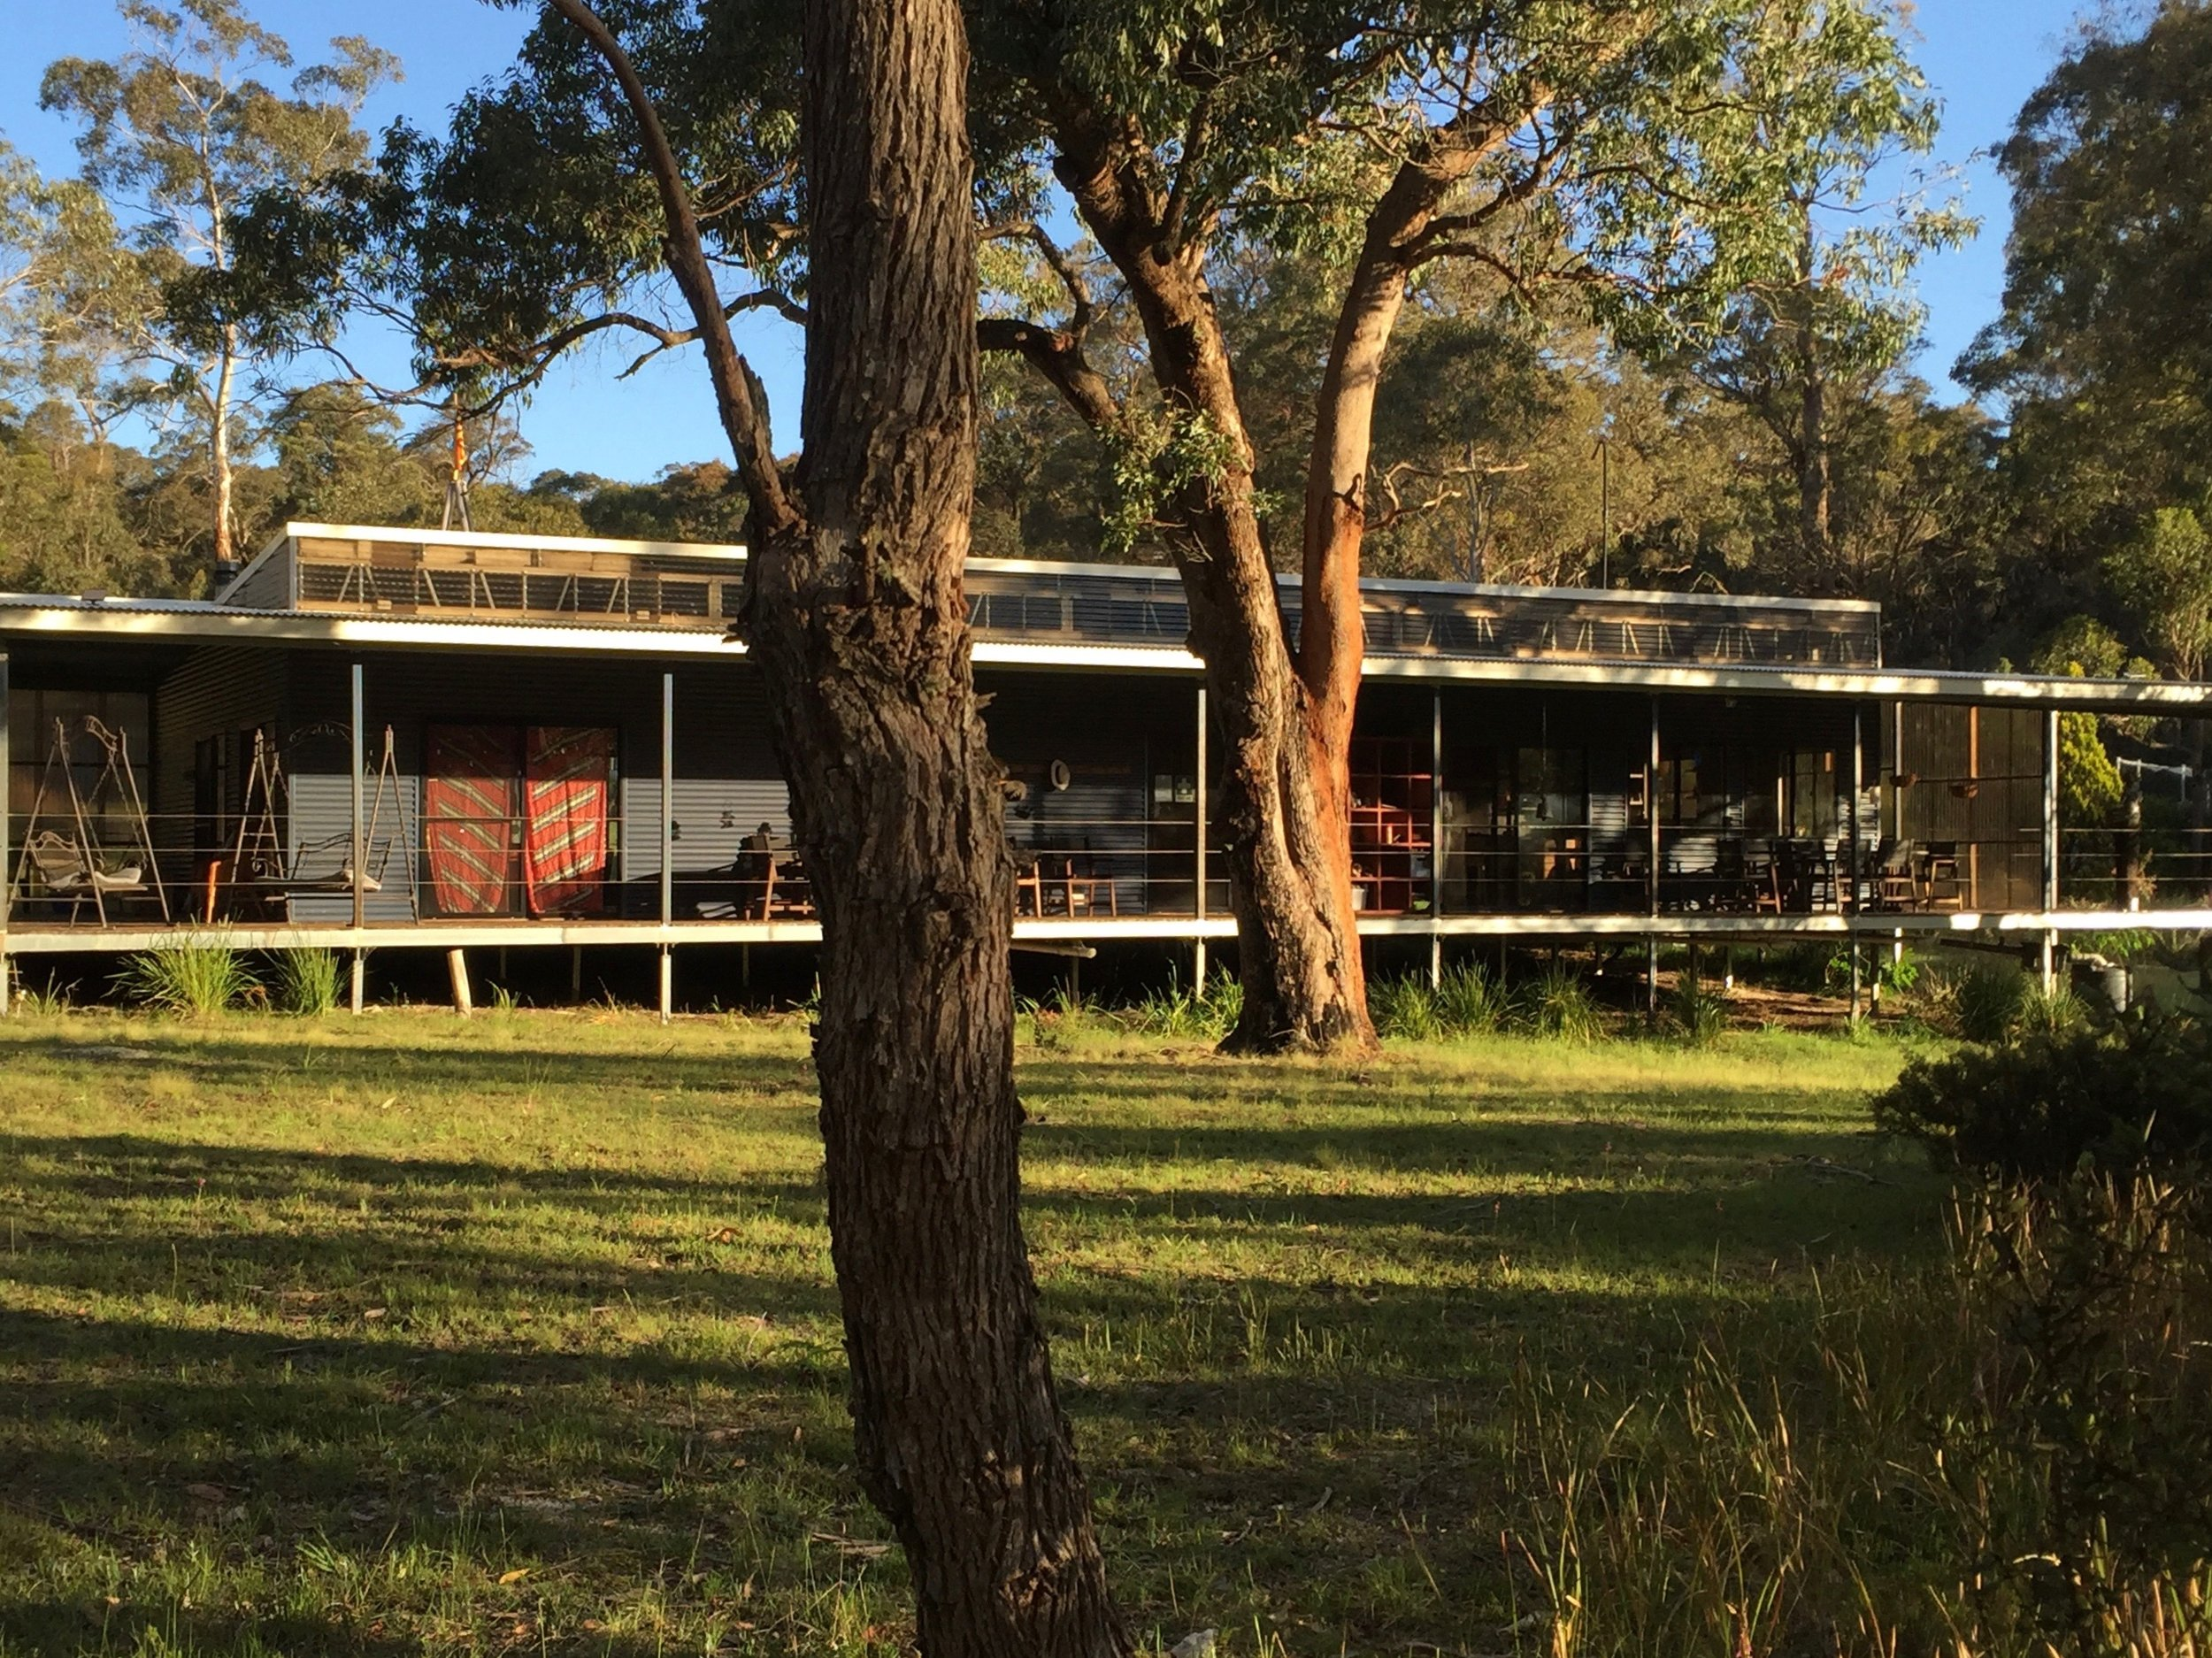 The Ark: once a 12 bay shed, now the hub of the sanctuary after a stylish build and conversion, with a carpeted music and meditation hall, kitchen/dining and a wide verandah for outside dining while the view to the forests.